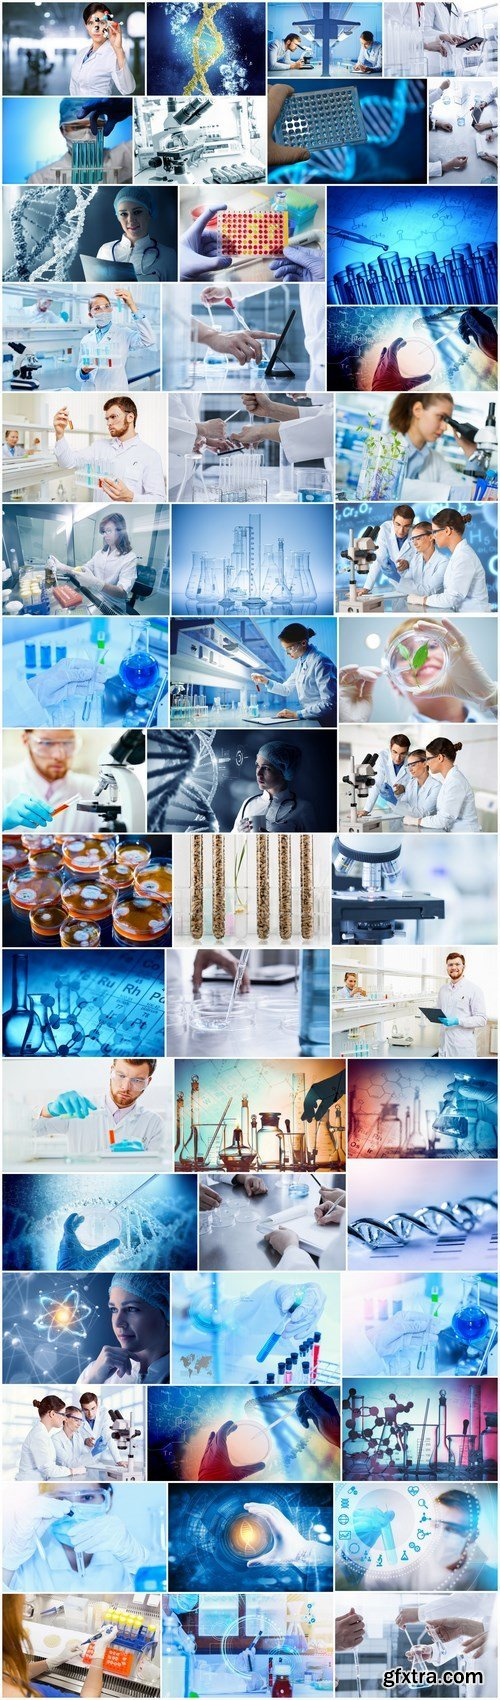 Laboratory, science, experiences and biotechnologies - 50xUHQ JPEG Professional Stock Images